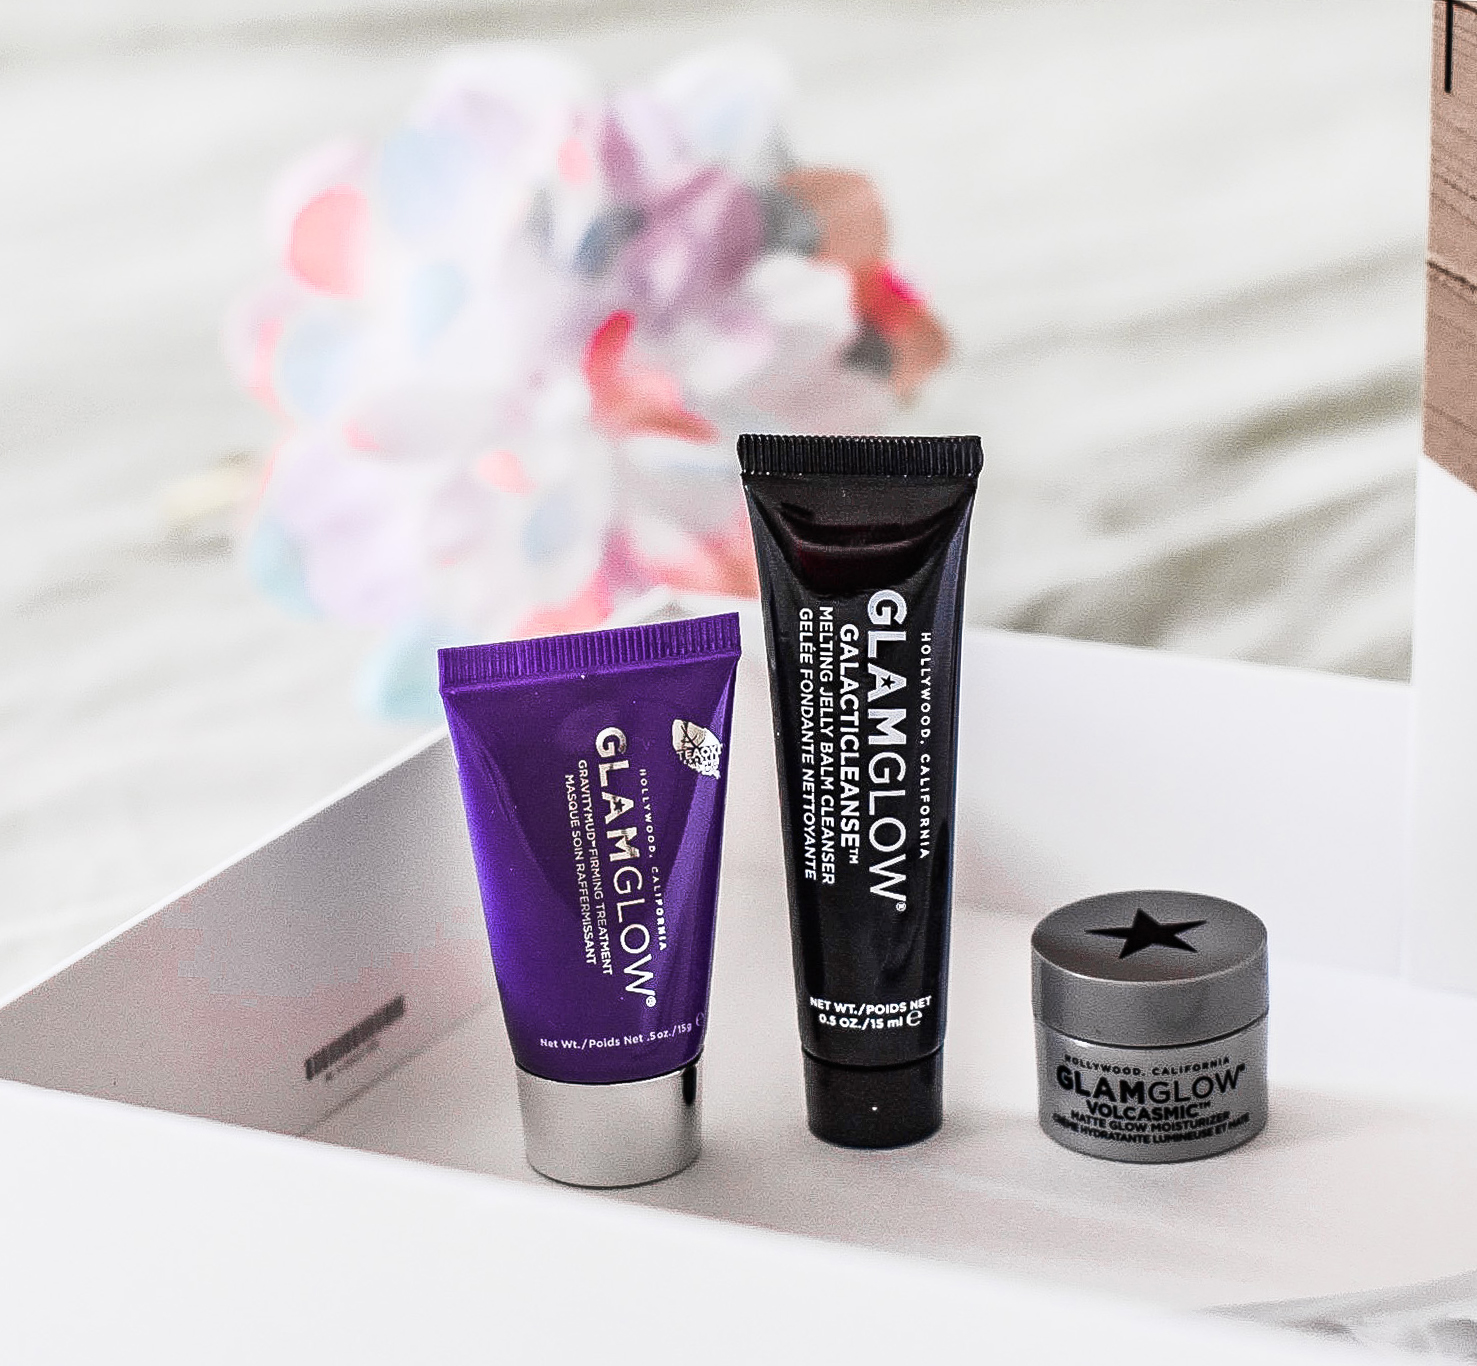 Glamglow Galacticleanse Melting Jelly Balm Cleanser, Glamglow Gravitymud Firming Treatment, Glamglow Volcasmic Matte Glow Moisturizer